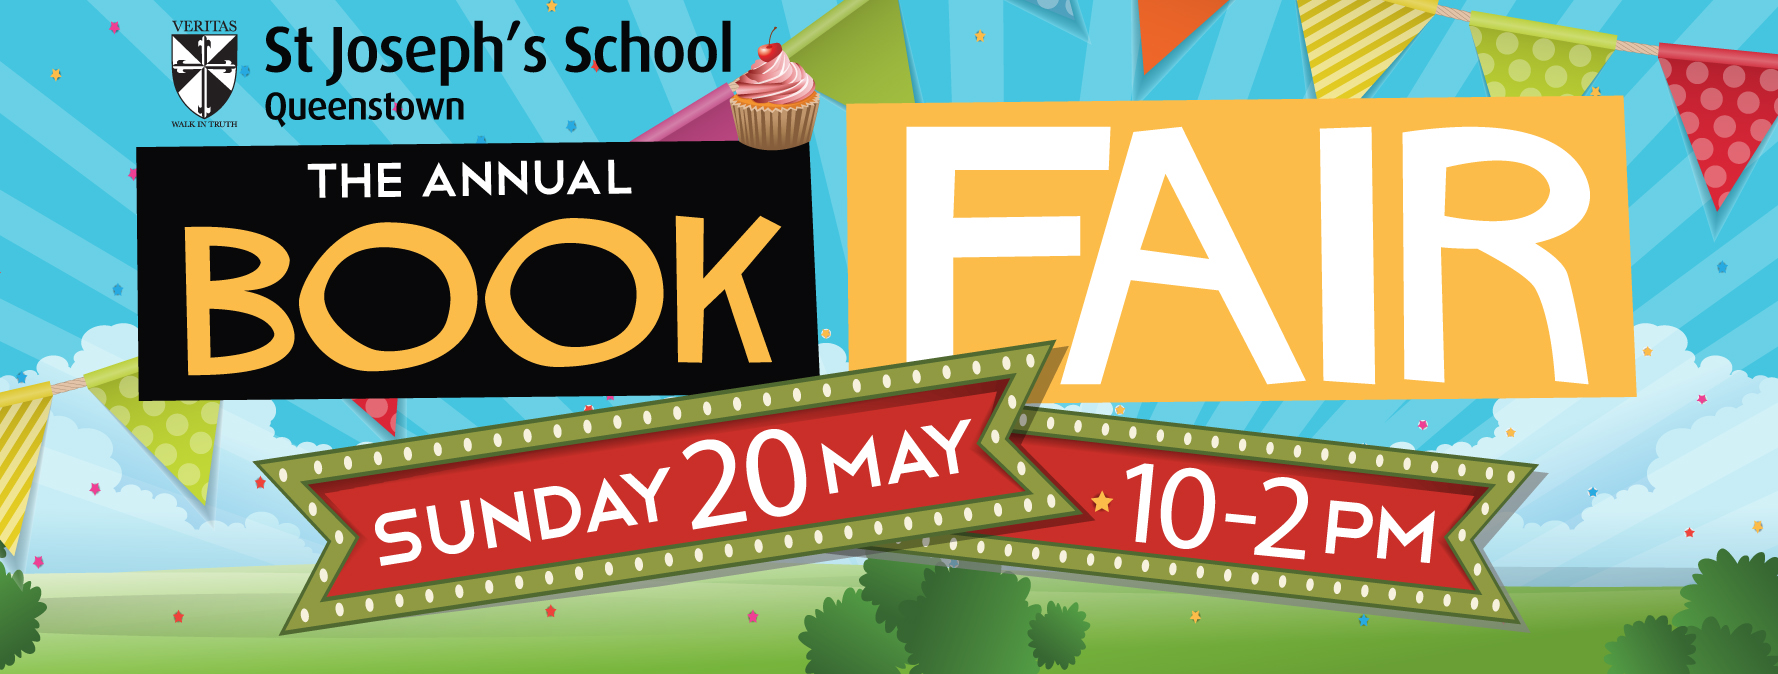 St Joseph's School Book Fair 2018 - 20th May